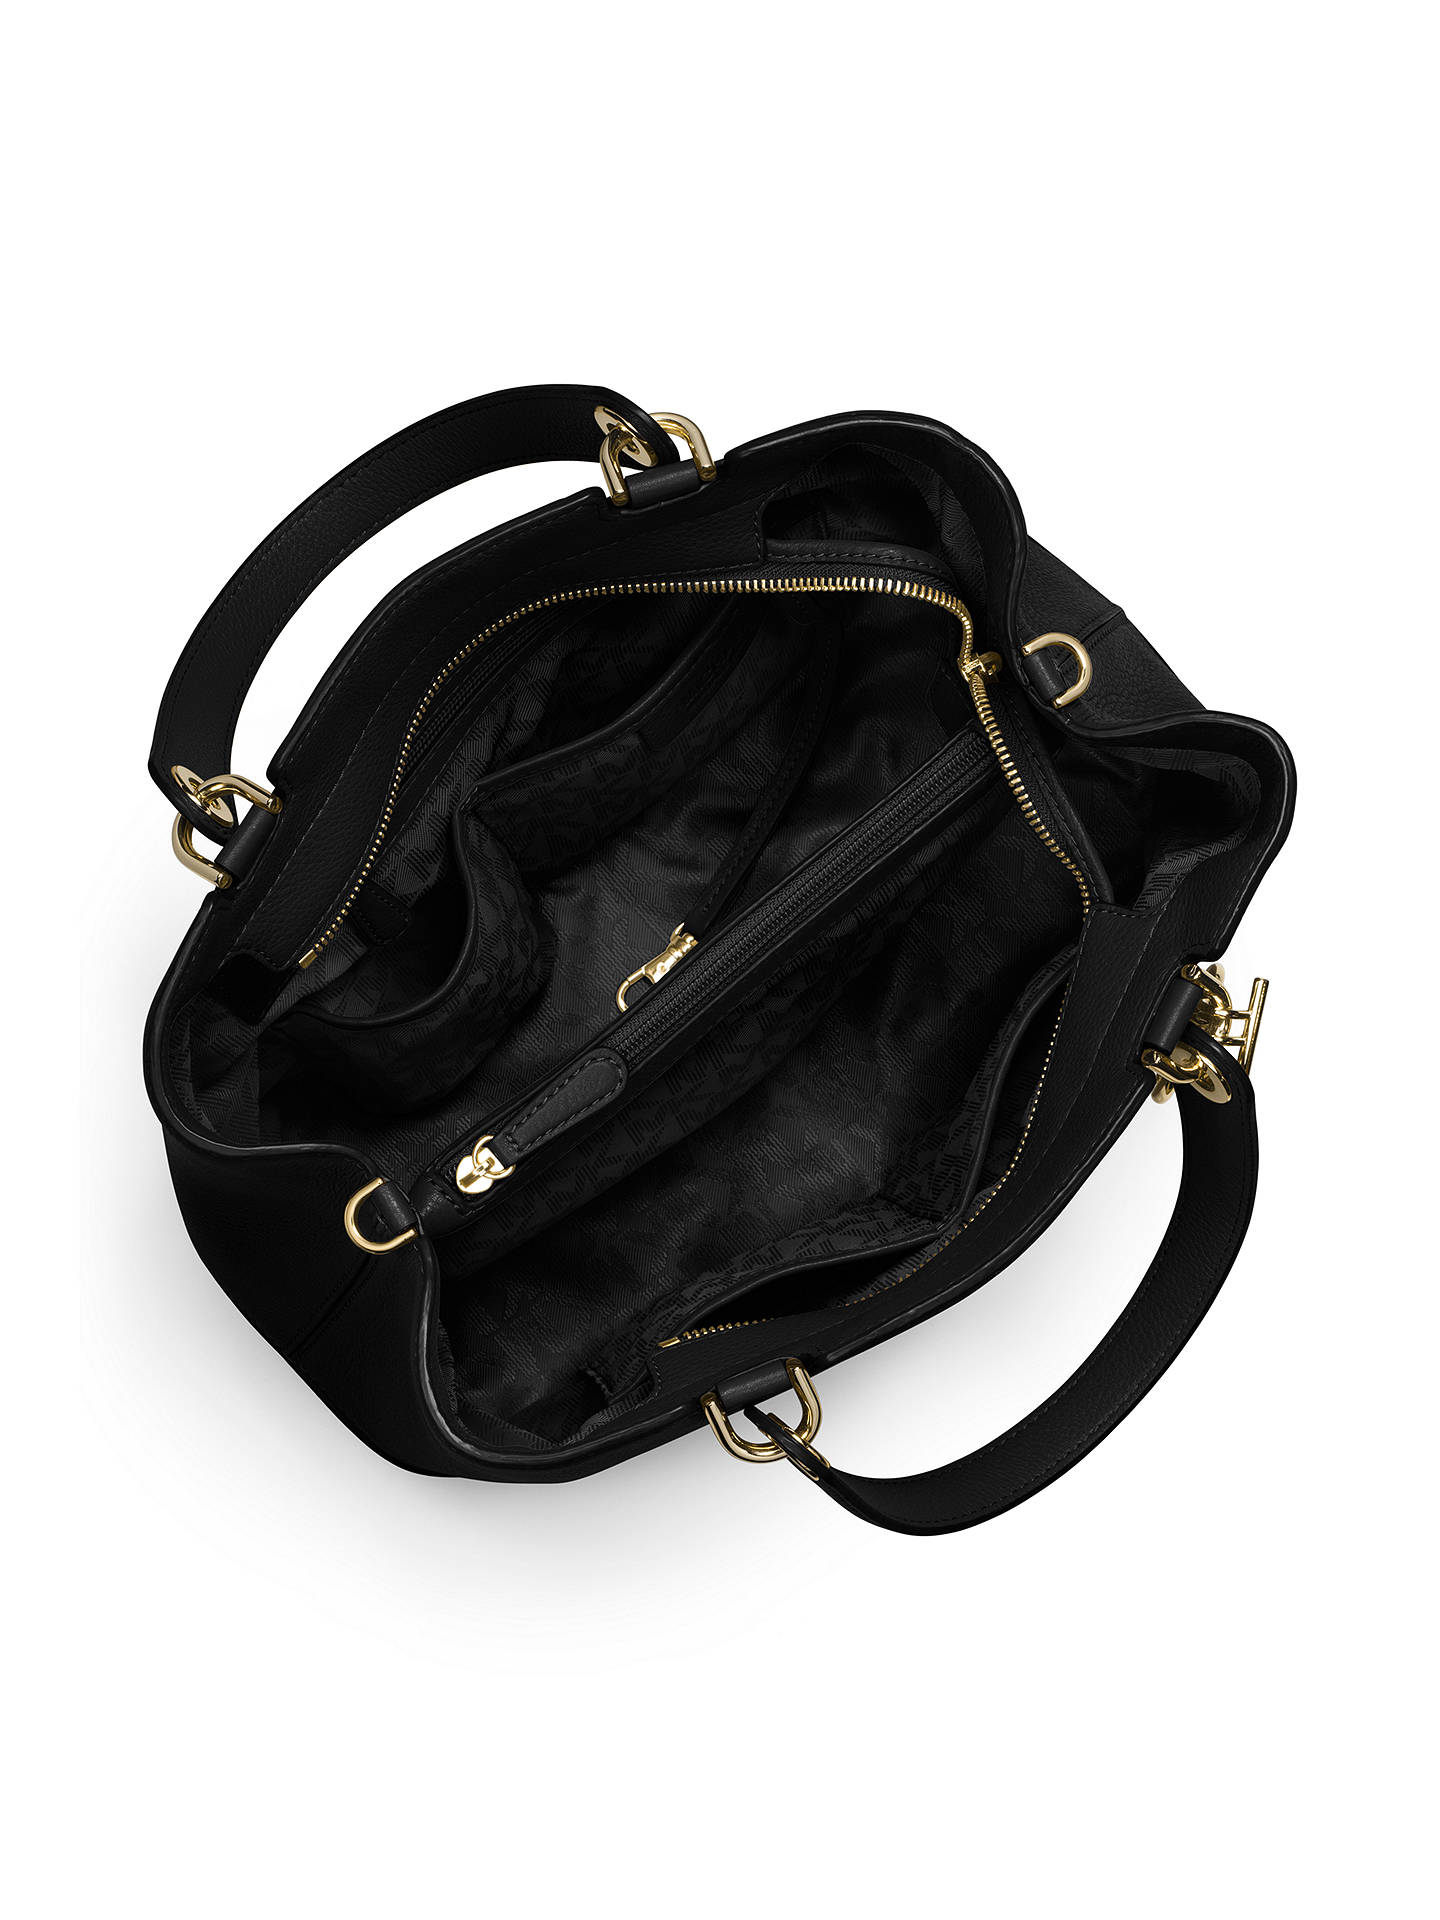 c74ff42e2b29 ... Buy MICHAEL Michael Kors Anabelle Large Top Zip Leather Tote Bag, Black  Online at johnlewis ...